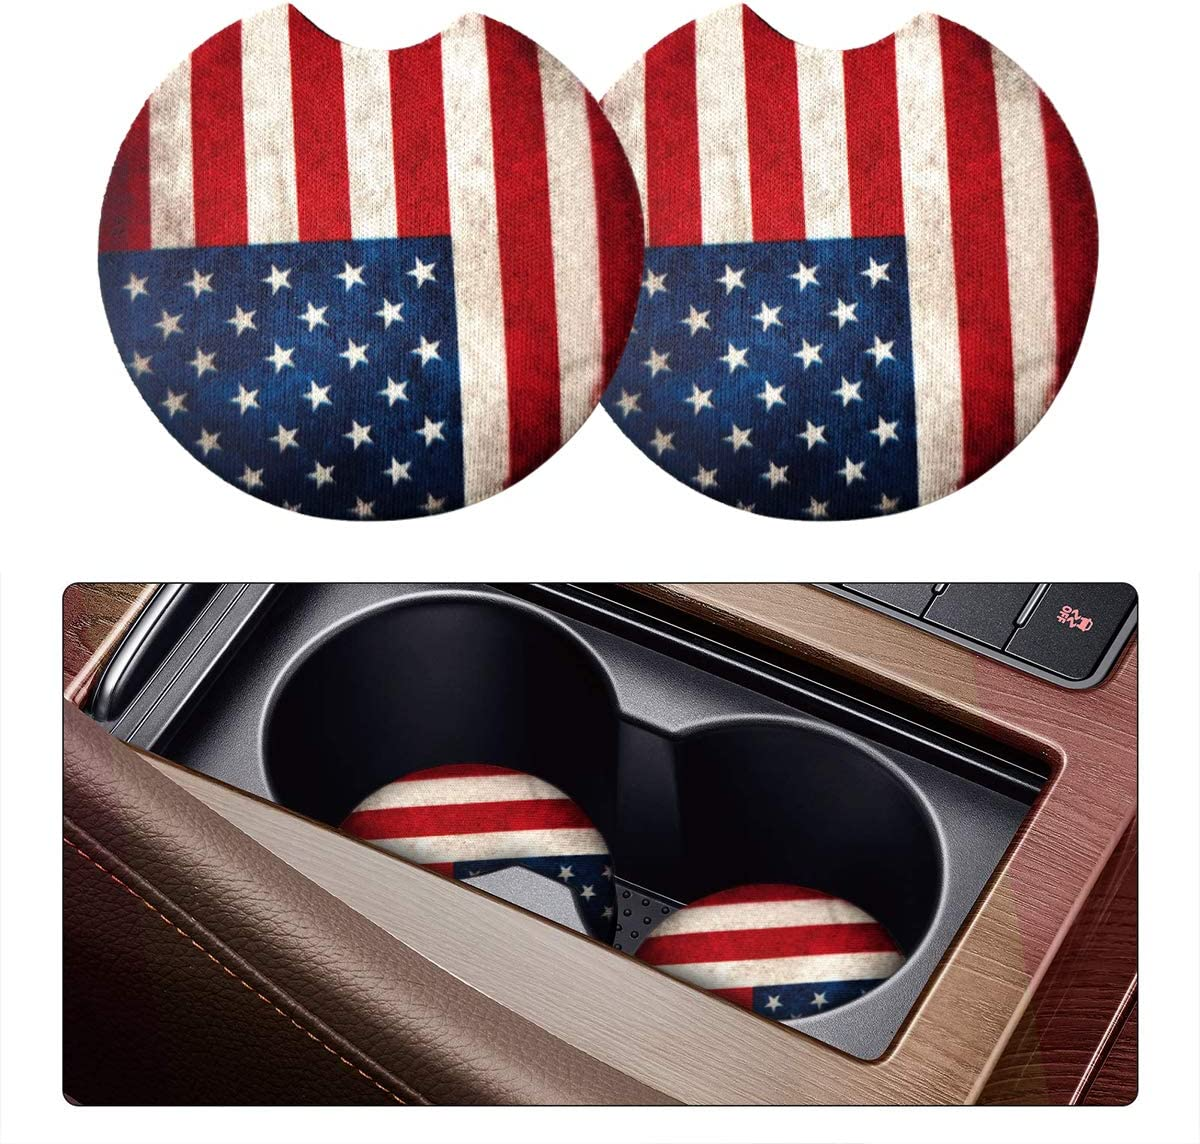 2 Pack Car Coasters for Drinks Absorbent - 2.75 Inch Cute Car Cup Holder Coasters for Women, Removable Cup Holder Coaster for Your Car, Car Interior Accessories for Women & Girls (Red Flag)